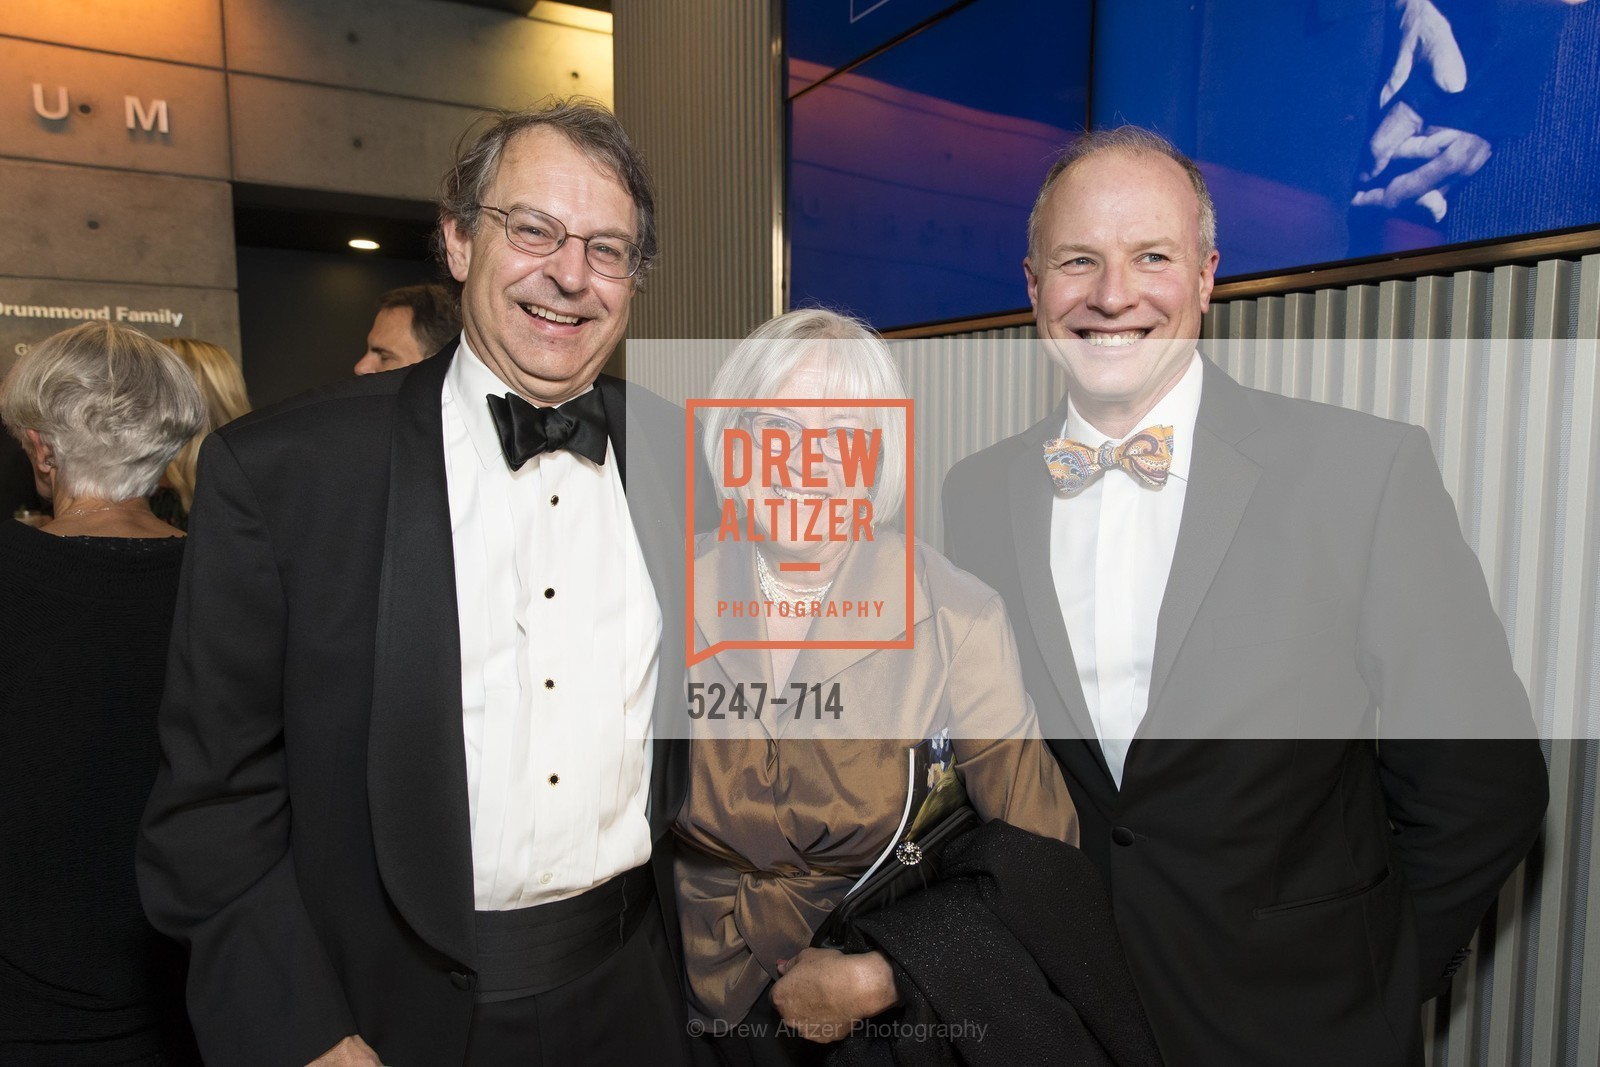 Peter Muhs, Kathryn Muhs, Don Derheim, SFJAZZ Gala 2015 Honors Joni Mitchell with Lifetime Achievement Award, US, May 8th, 2015,Drew Altizer, Drew Altizer Photography, full-service agency, private events, San Francisco photographer, photographer california